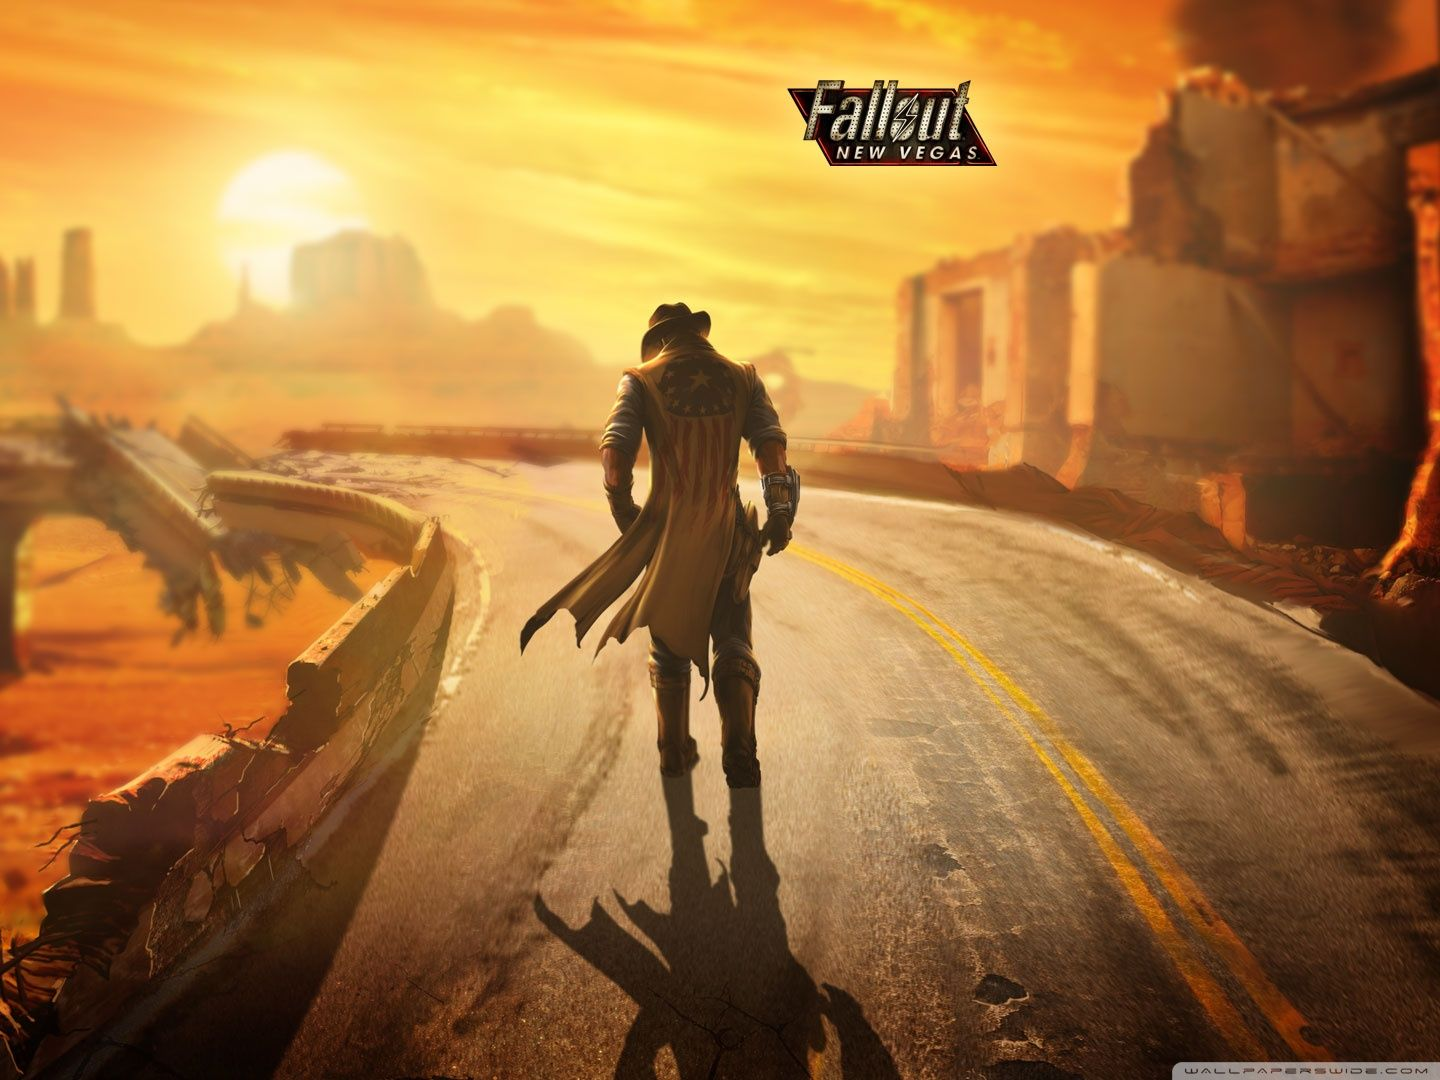 Fallout New Vegas Wallpaper Hd Wallpaper Hd Fallout Wallpaper